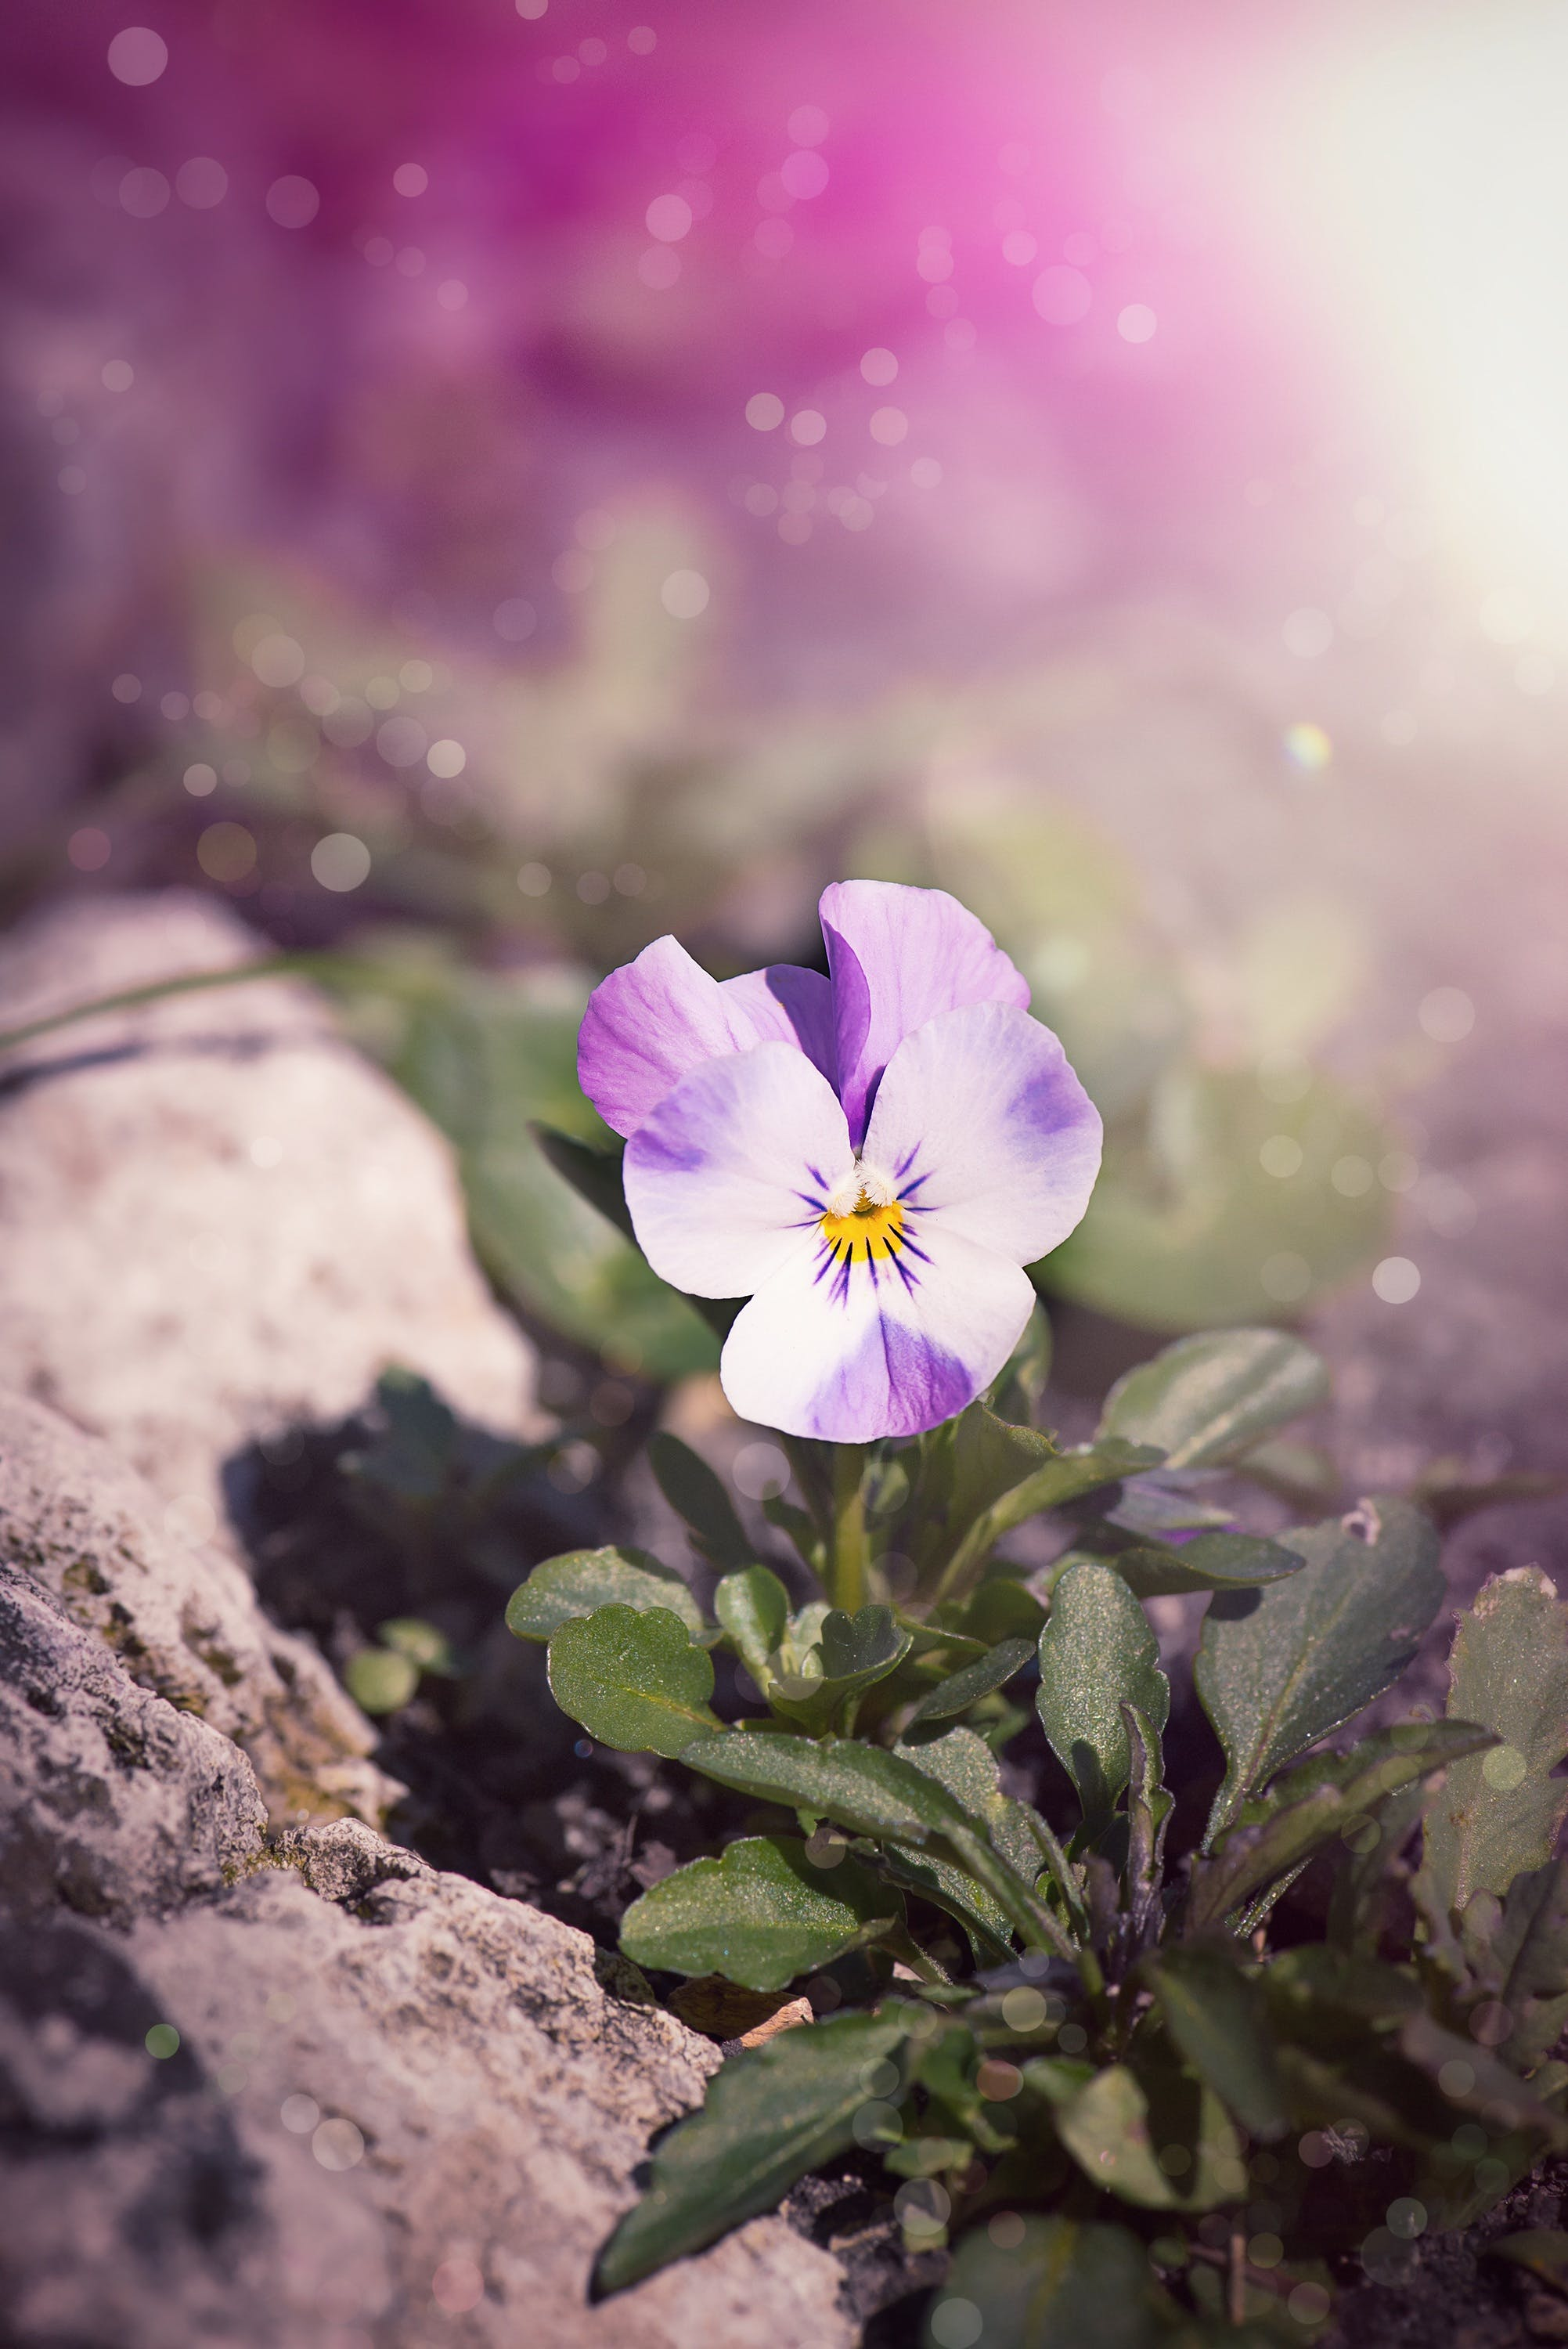 Free stock photo of nature, garden, petals, blur